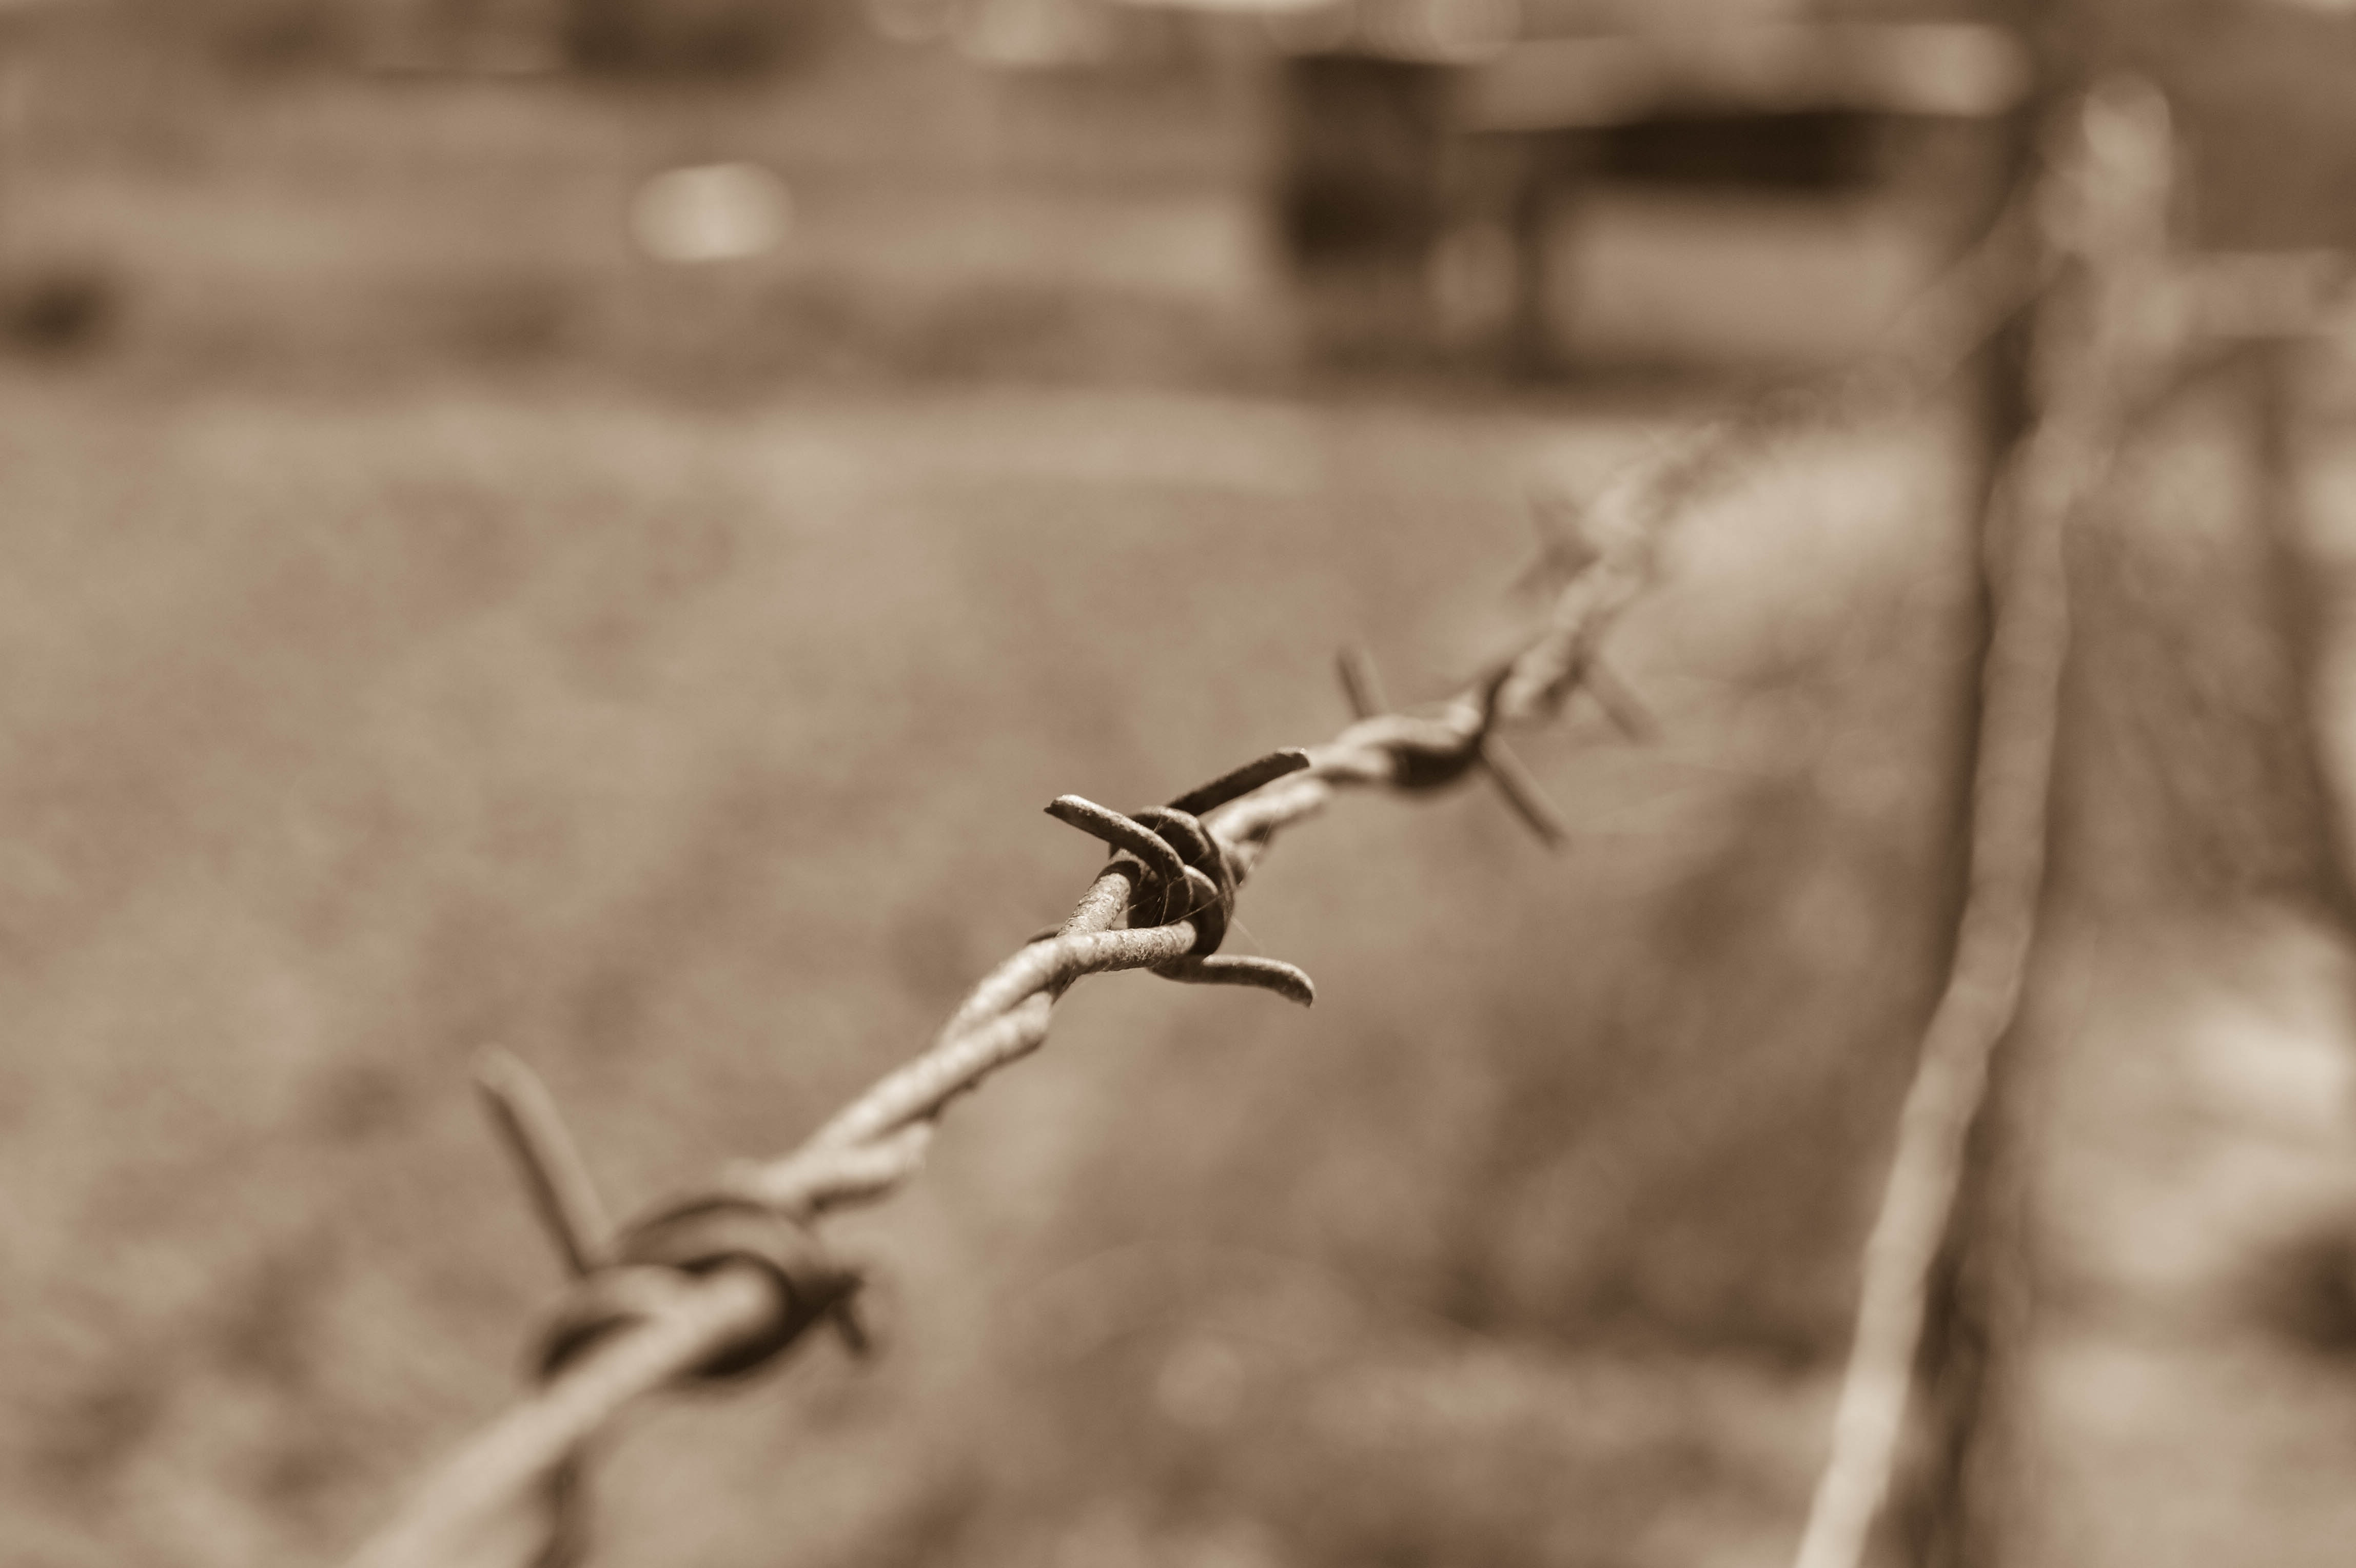 close-up-of-wire-against-blurred-background-237812.jpg